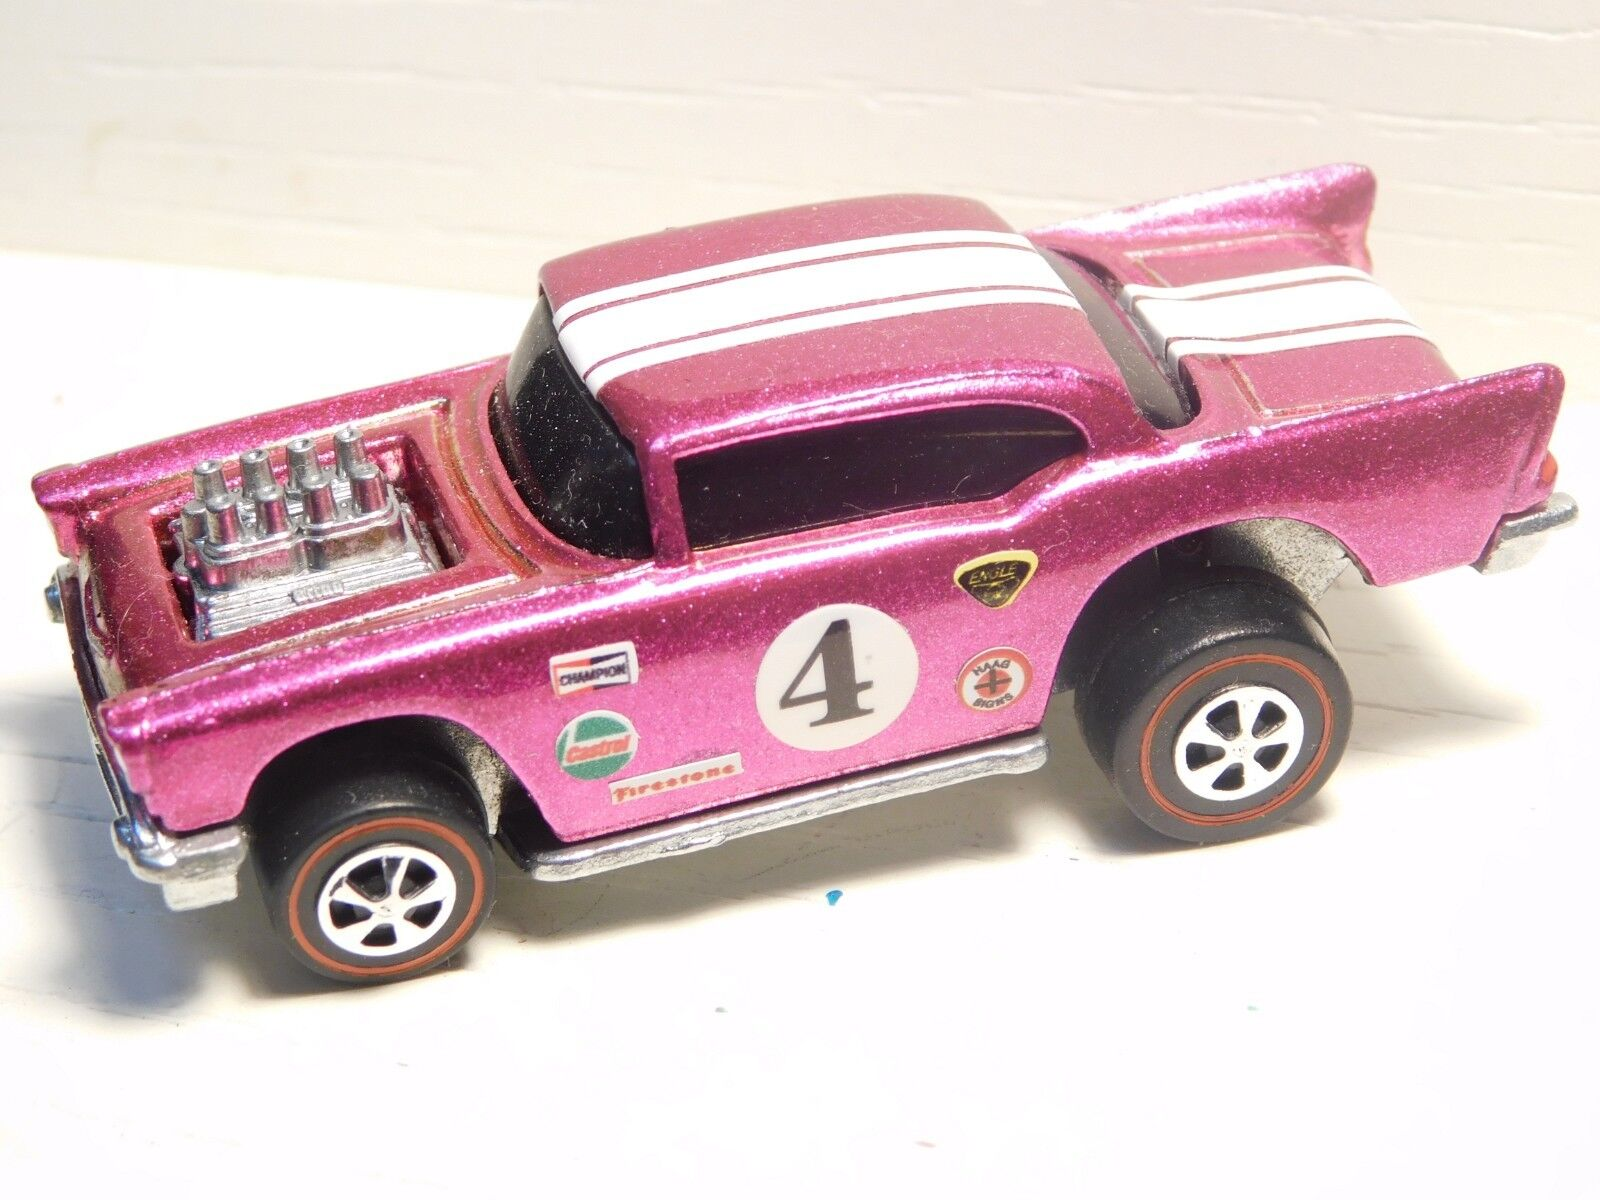 57 chevy hot wheels rotline premium - a - Rosa - umstellung